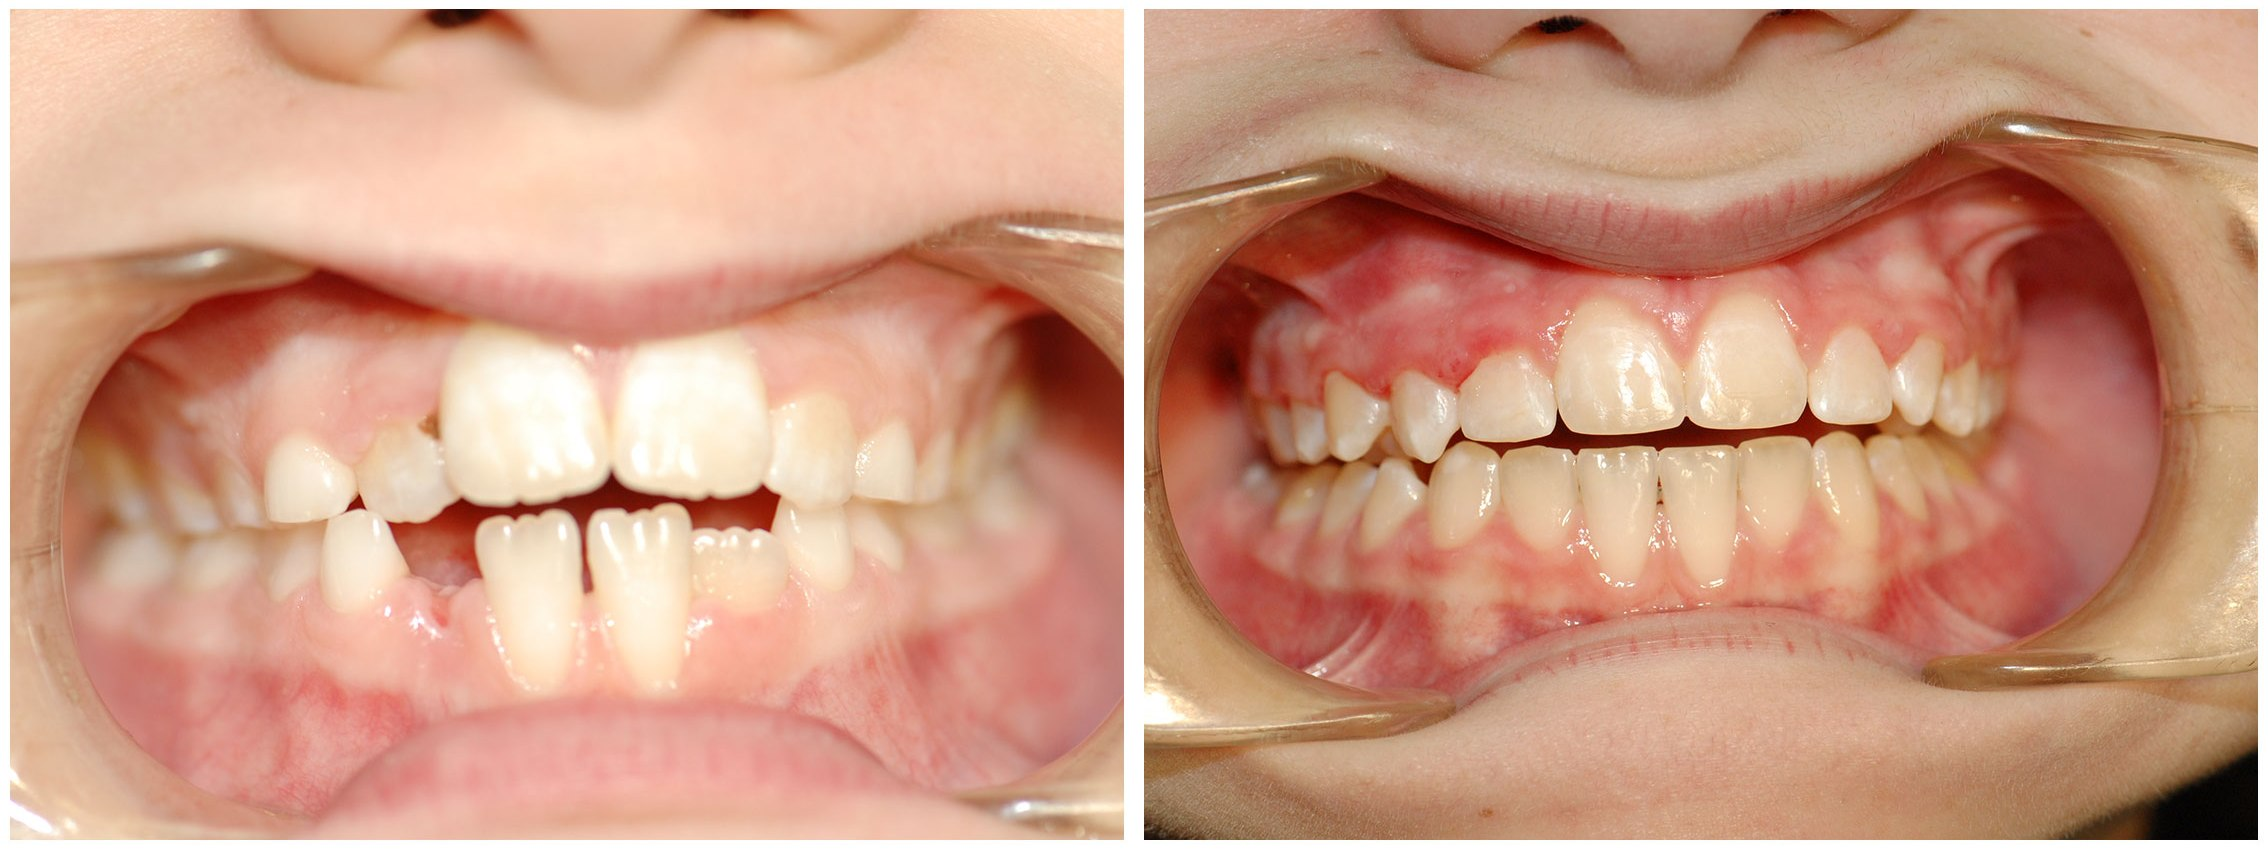 Periodontic Dental Braces Before & After